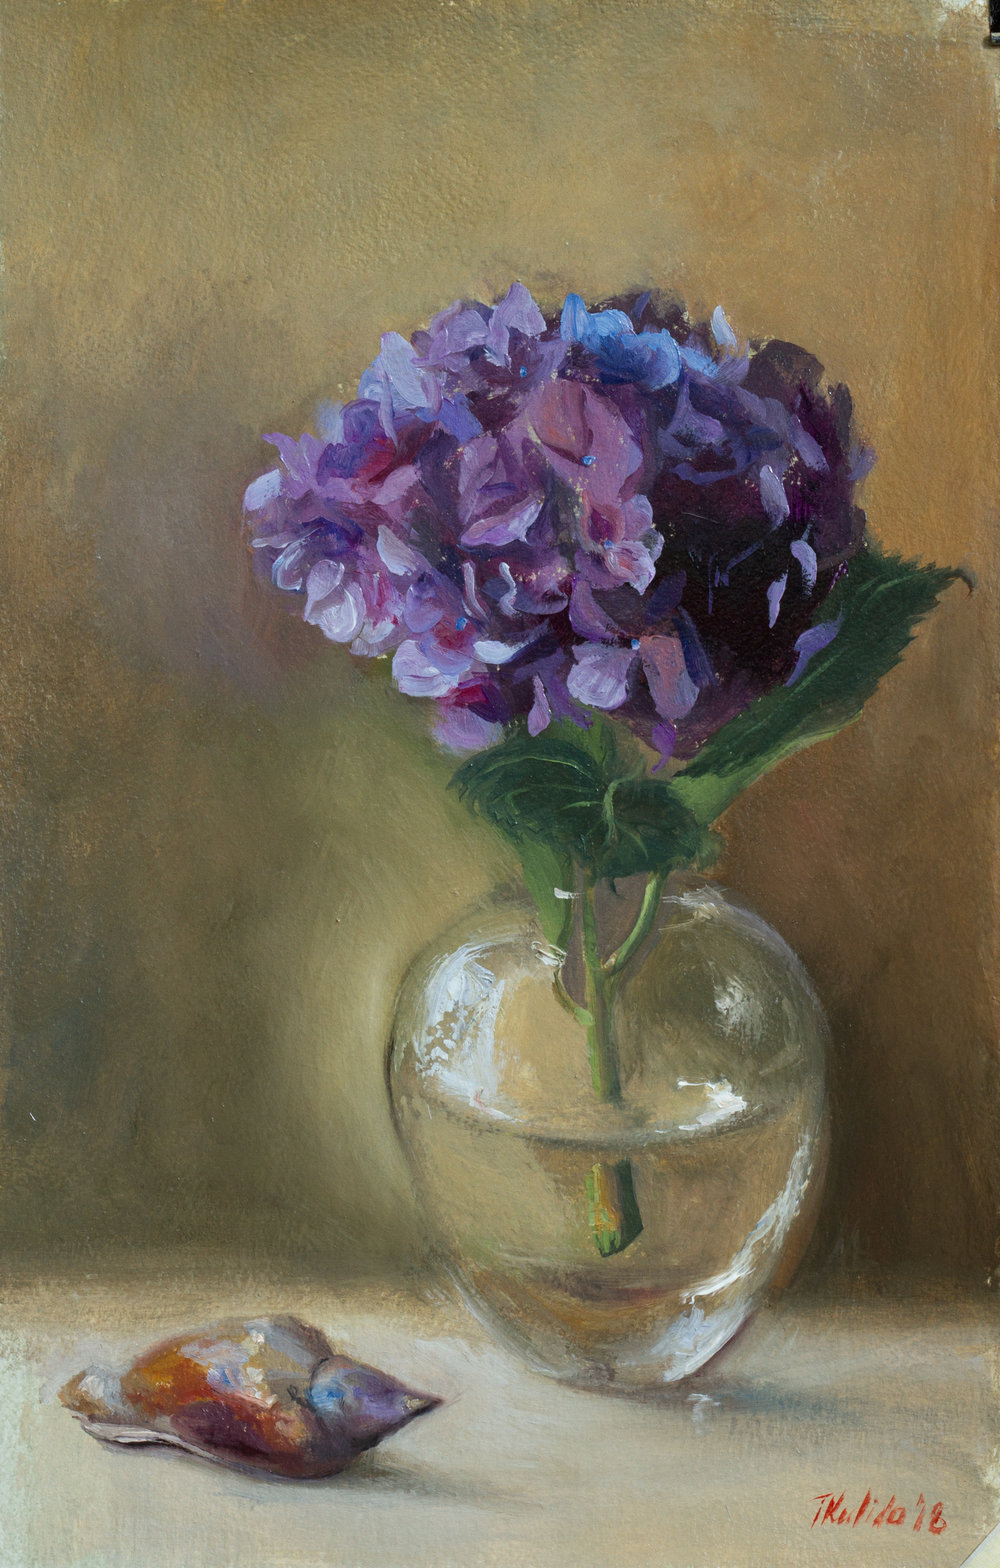 Hydrangea and a whelk,  study, oil on prepared paper, 28x43, February 2018